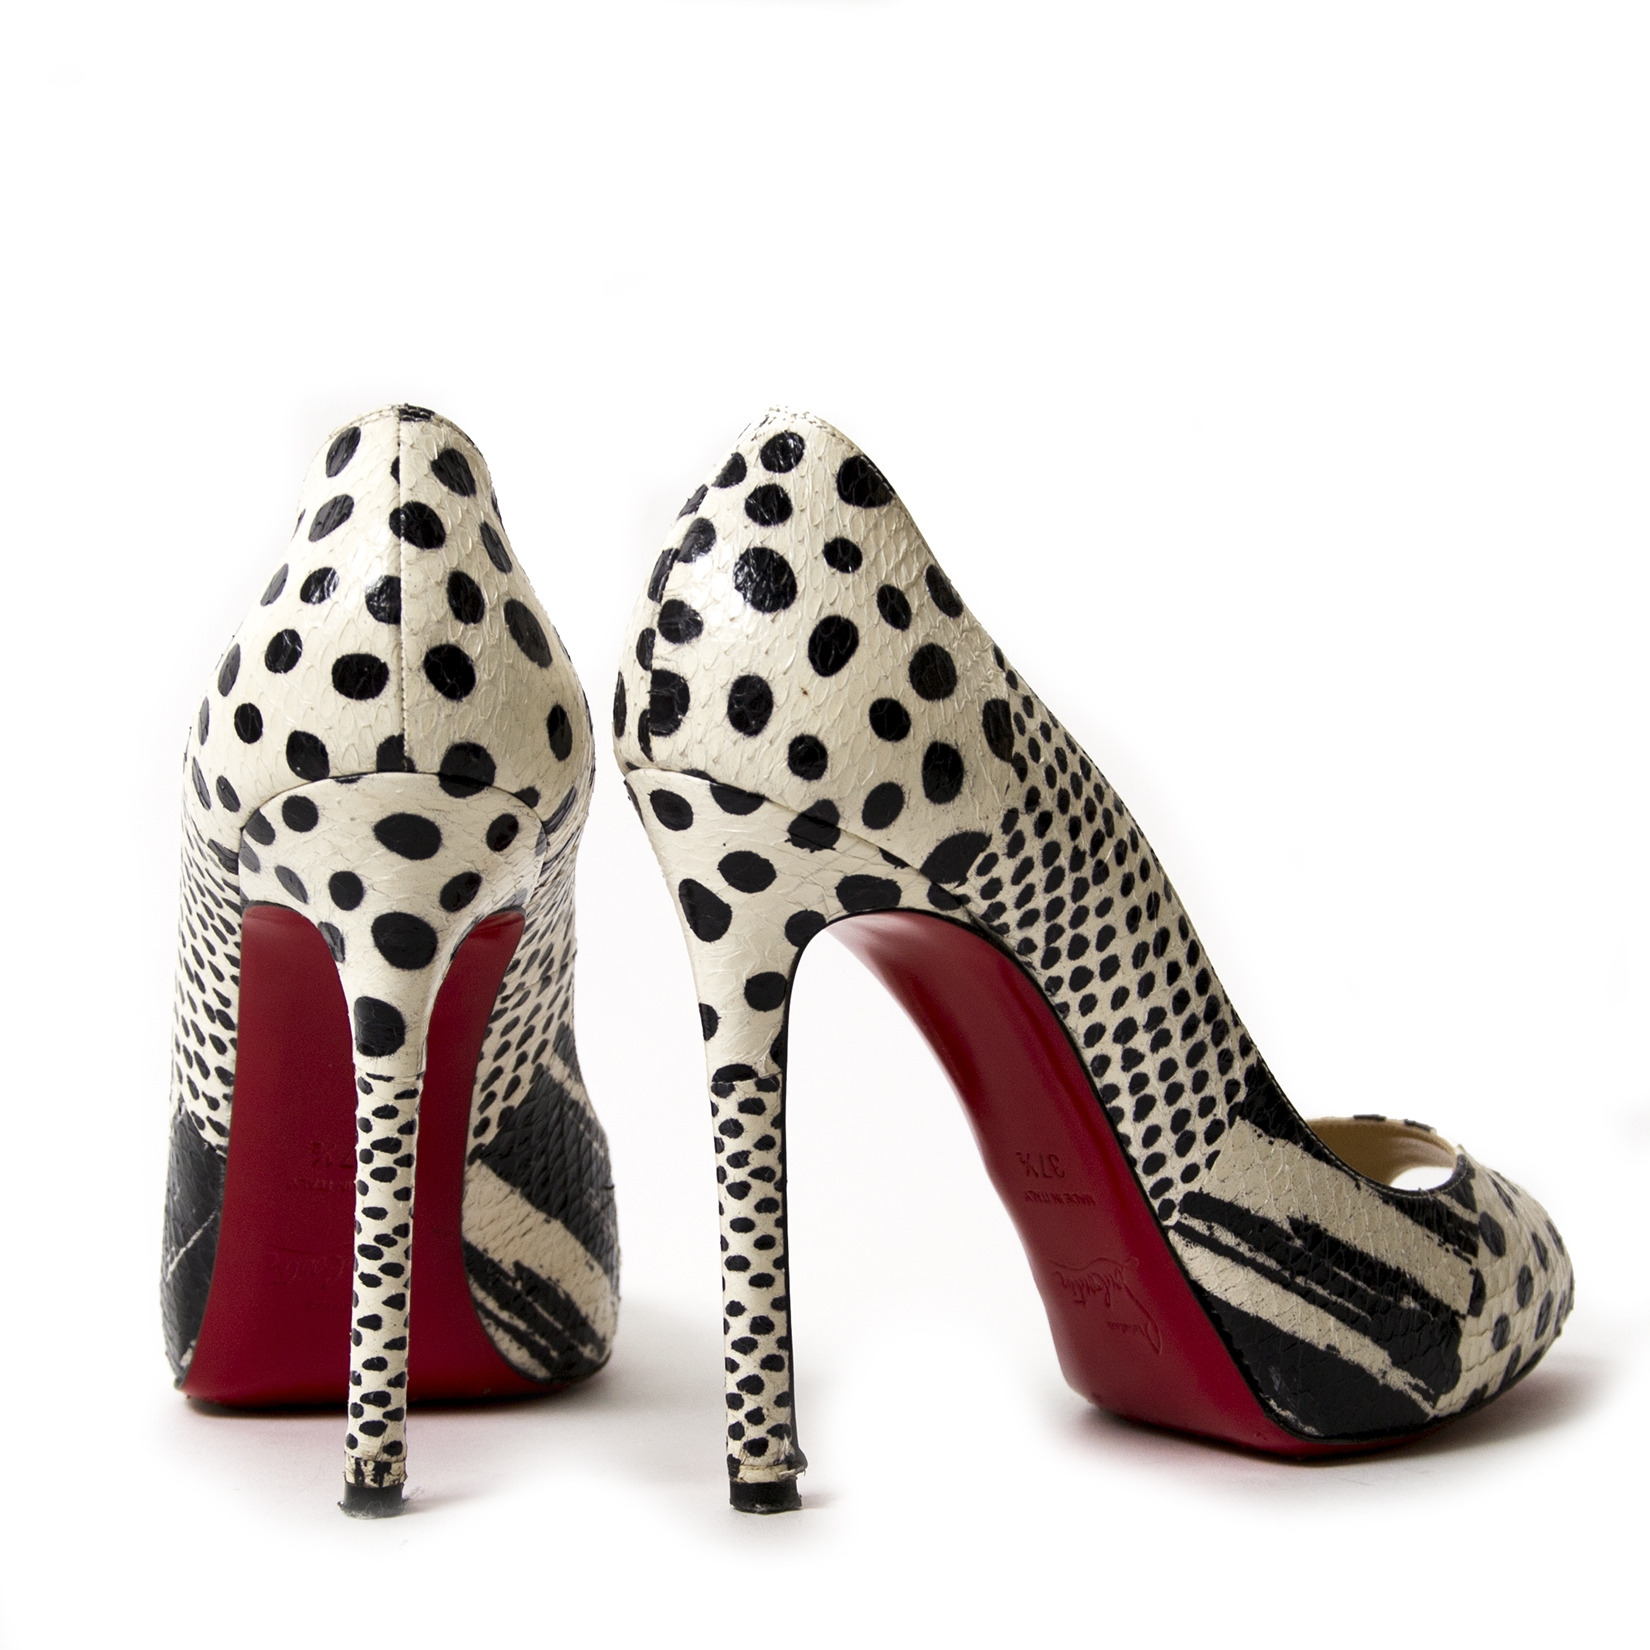 0b1d1fd15972 ... Christian Louboutin Printed Pumps - Size 37.5 for sale